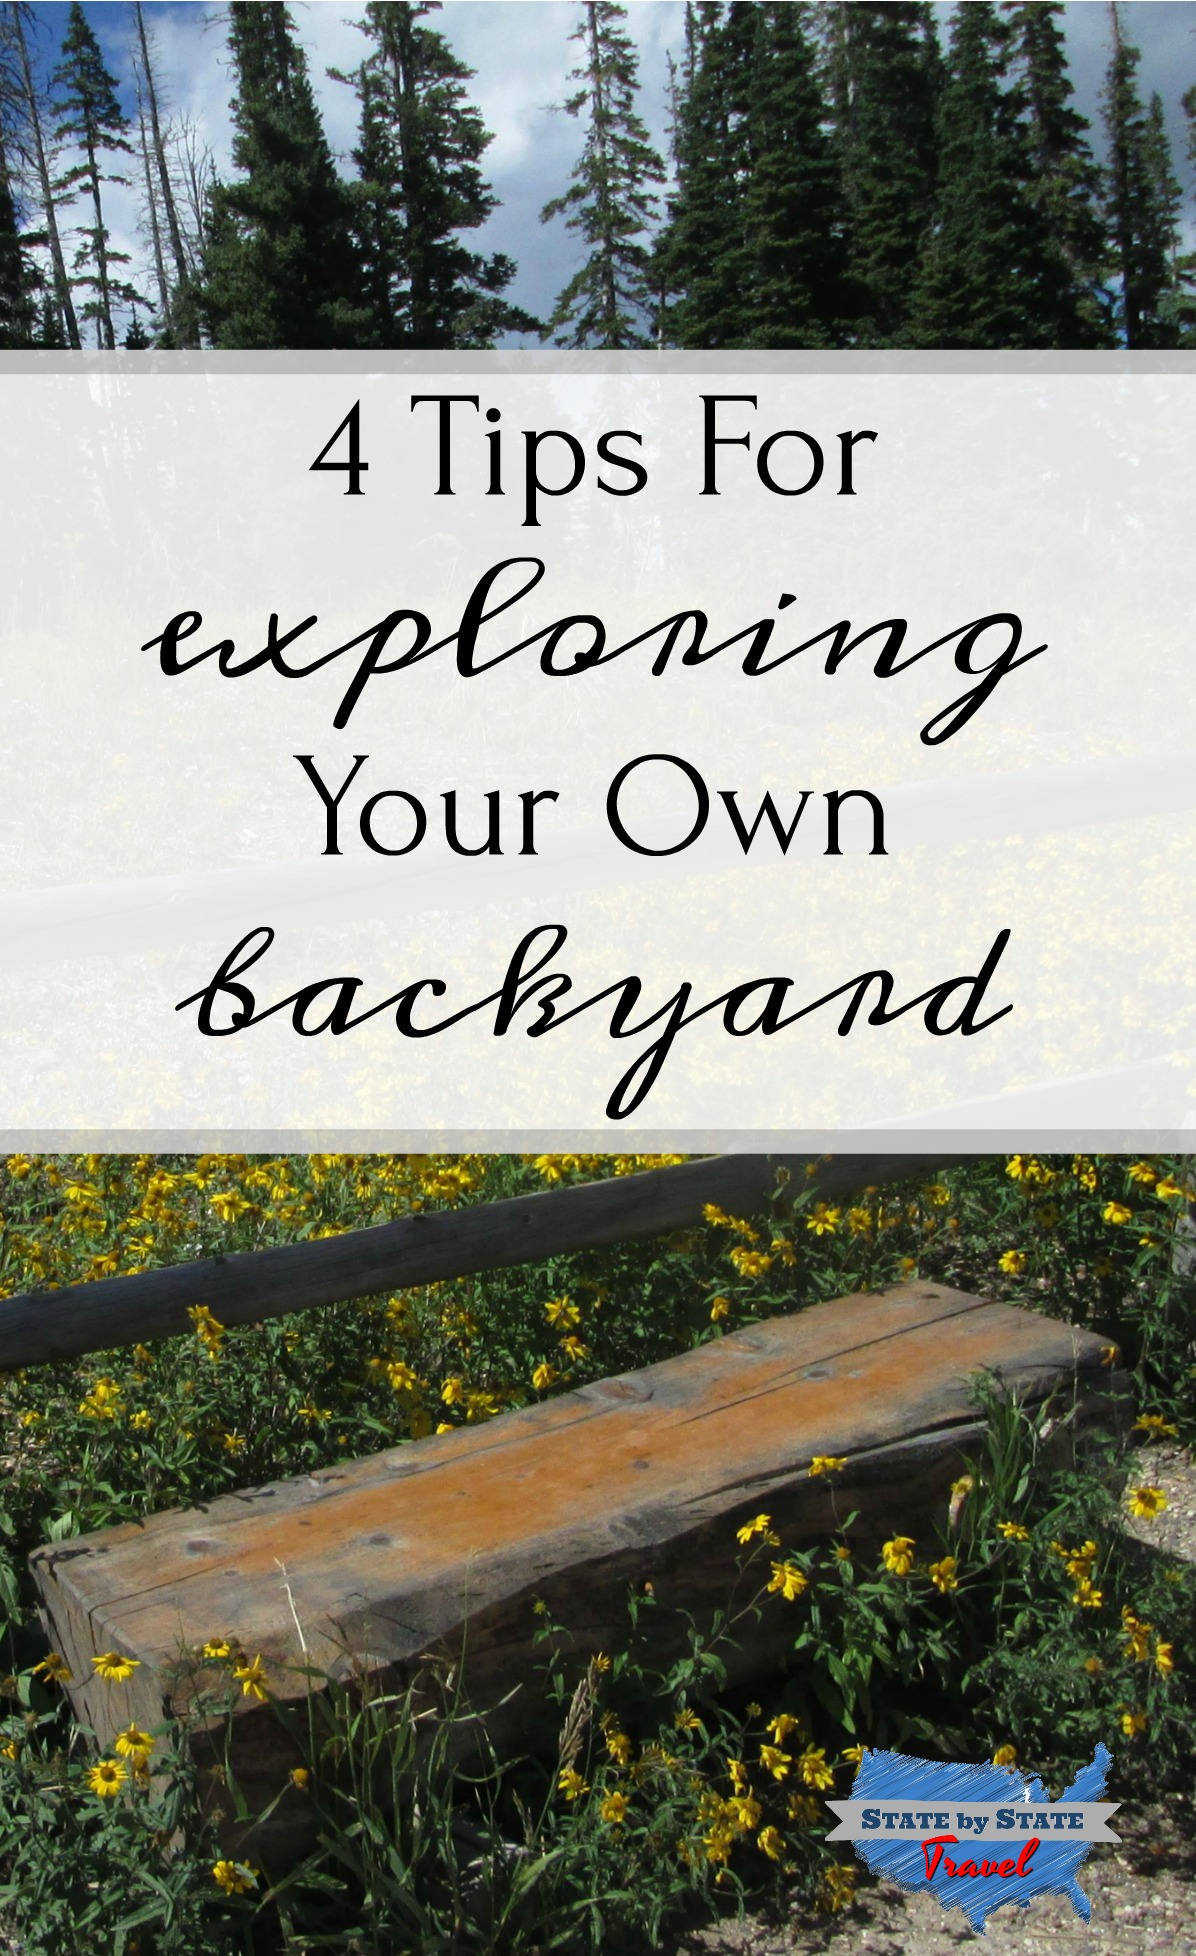 4 tips for exploring your own background